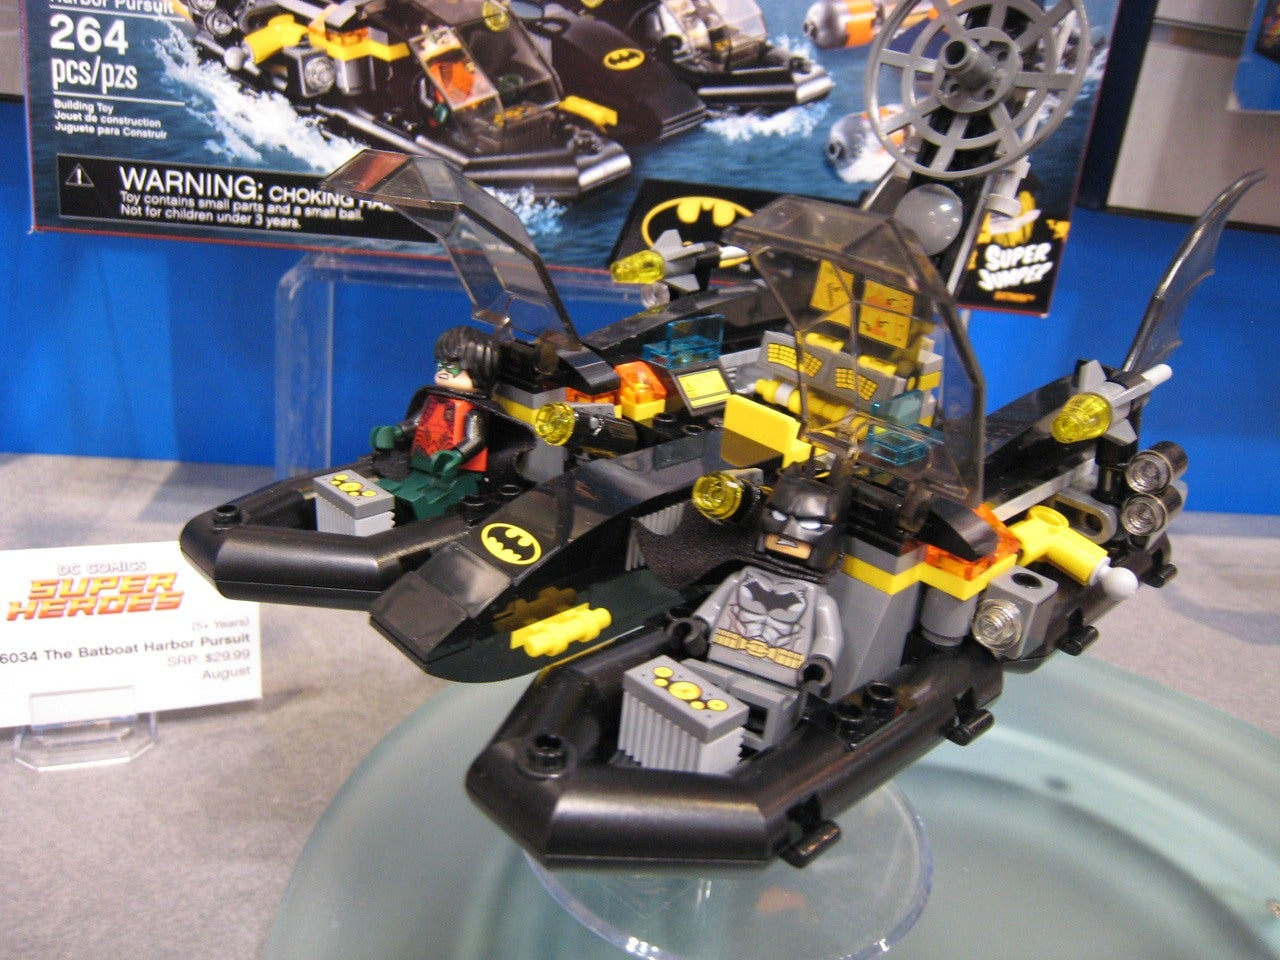 LEGO Justice League Sets Feature Harley Quinn Darkseid Scuba Robin and More  IGN